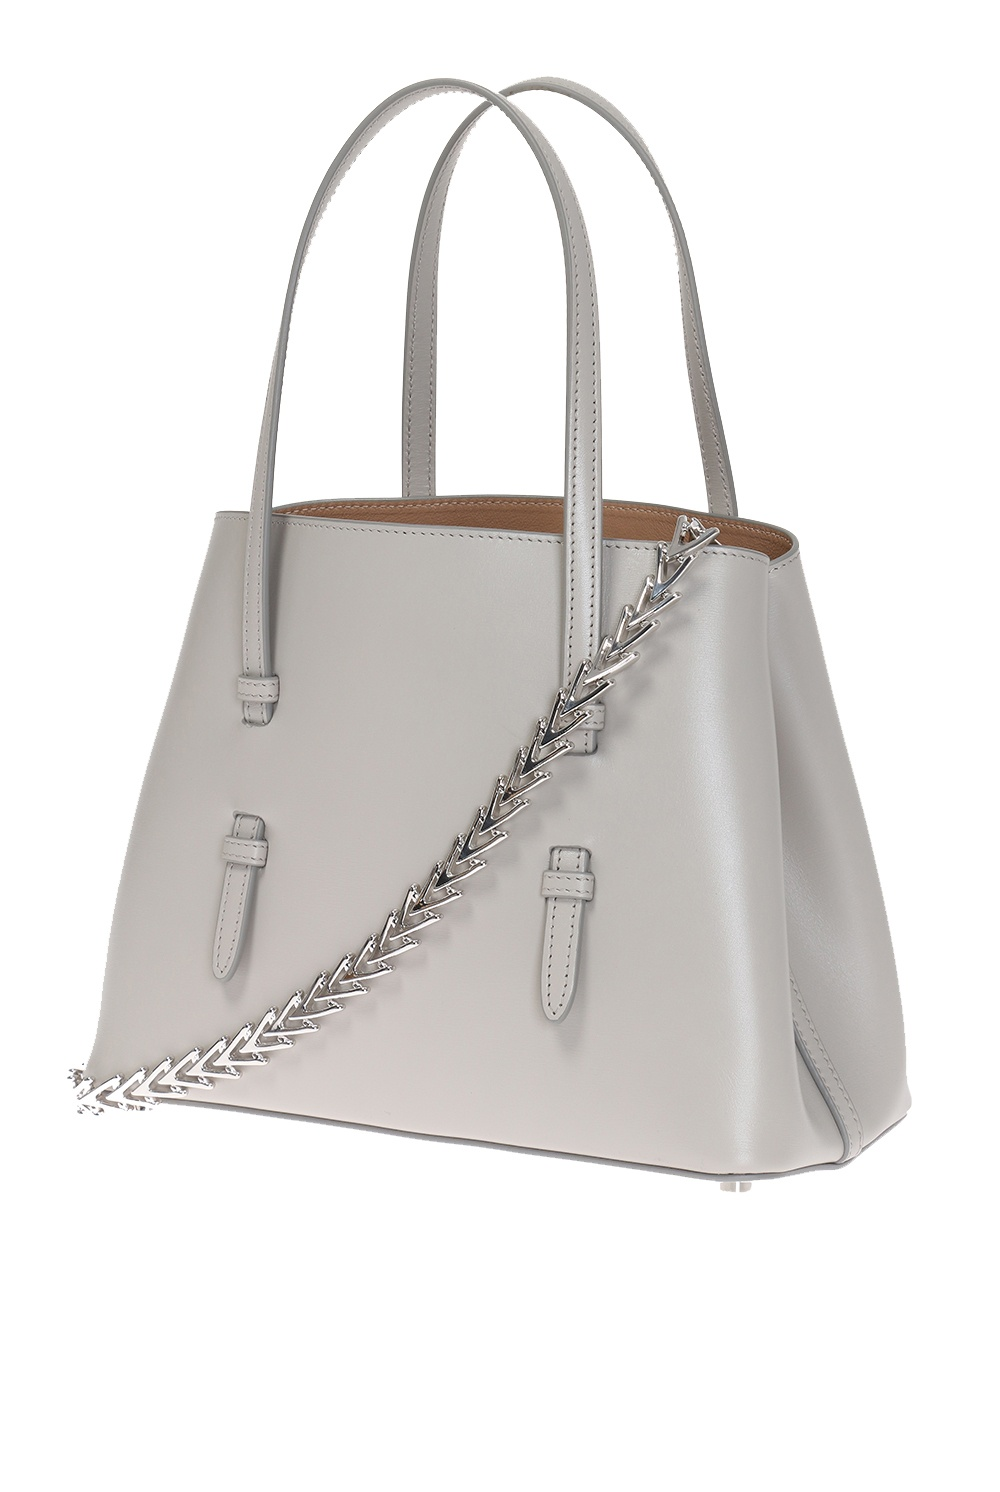 Alaia Shoulder bag